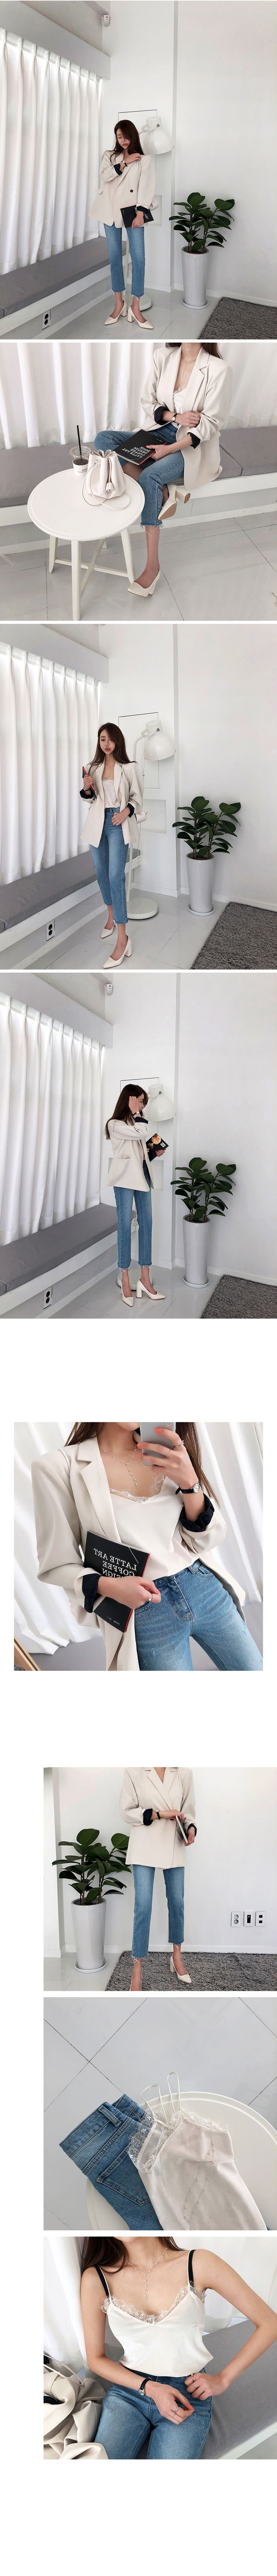 Korea women's clothing online store, Korea Women's Store MOCO BLING, trendy style clothing shopping, clothes shopping for the latest design BOTTOM DENIM Clean Daisy - denim.pt